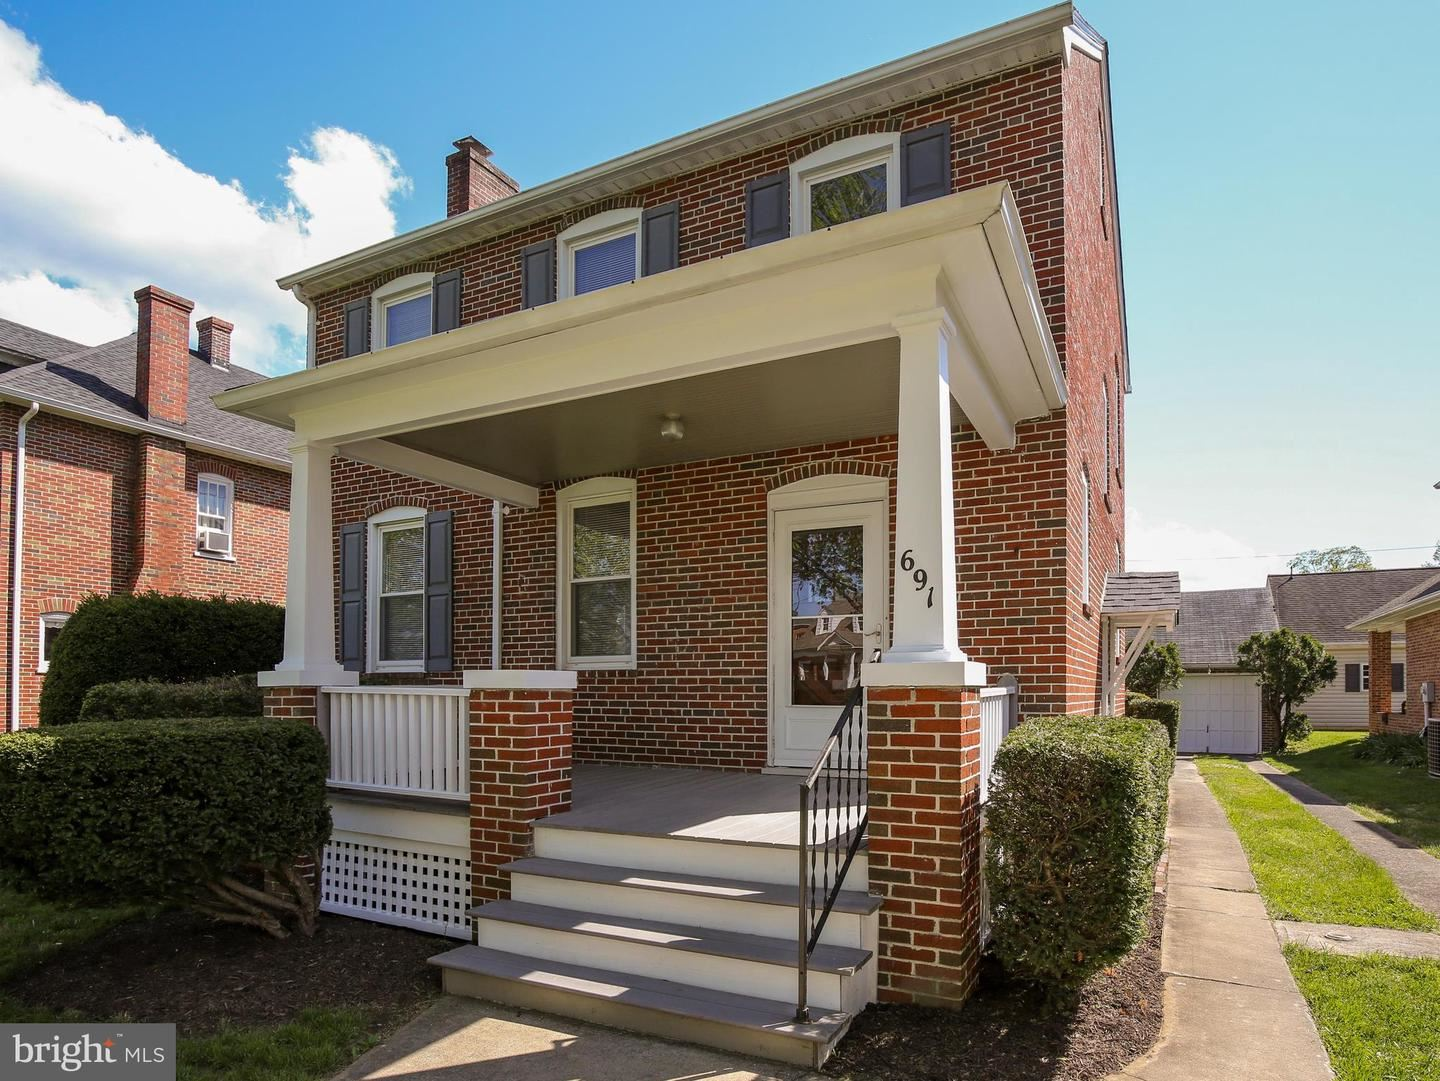 Photo for 691 WOODLAND AVE, WINCHESTER, VA 22601 (MLS # VAWI114274)